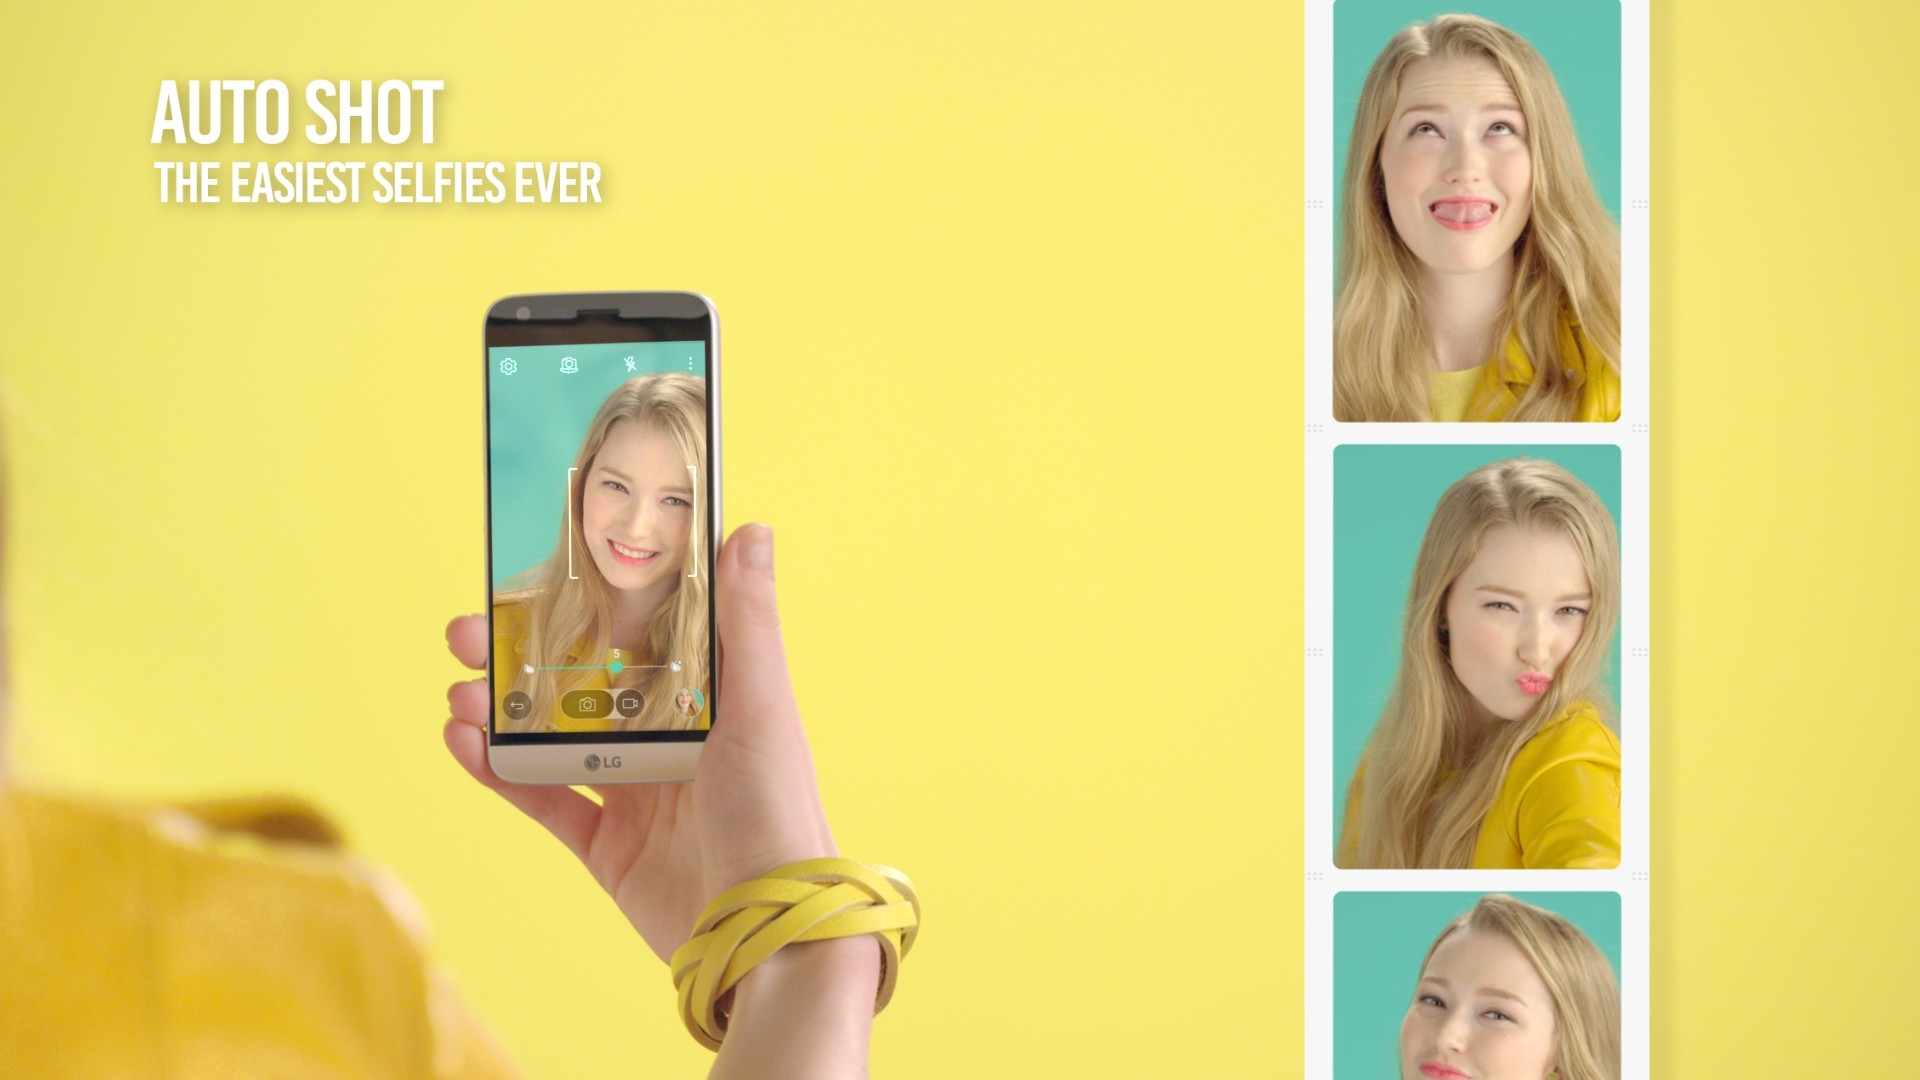 A girl takes selfies with the LG G5's Auto Shot feature